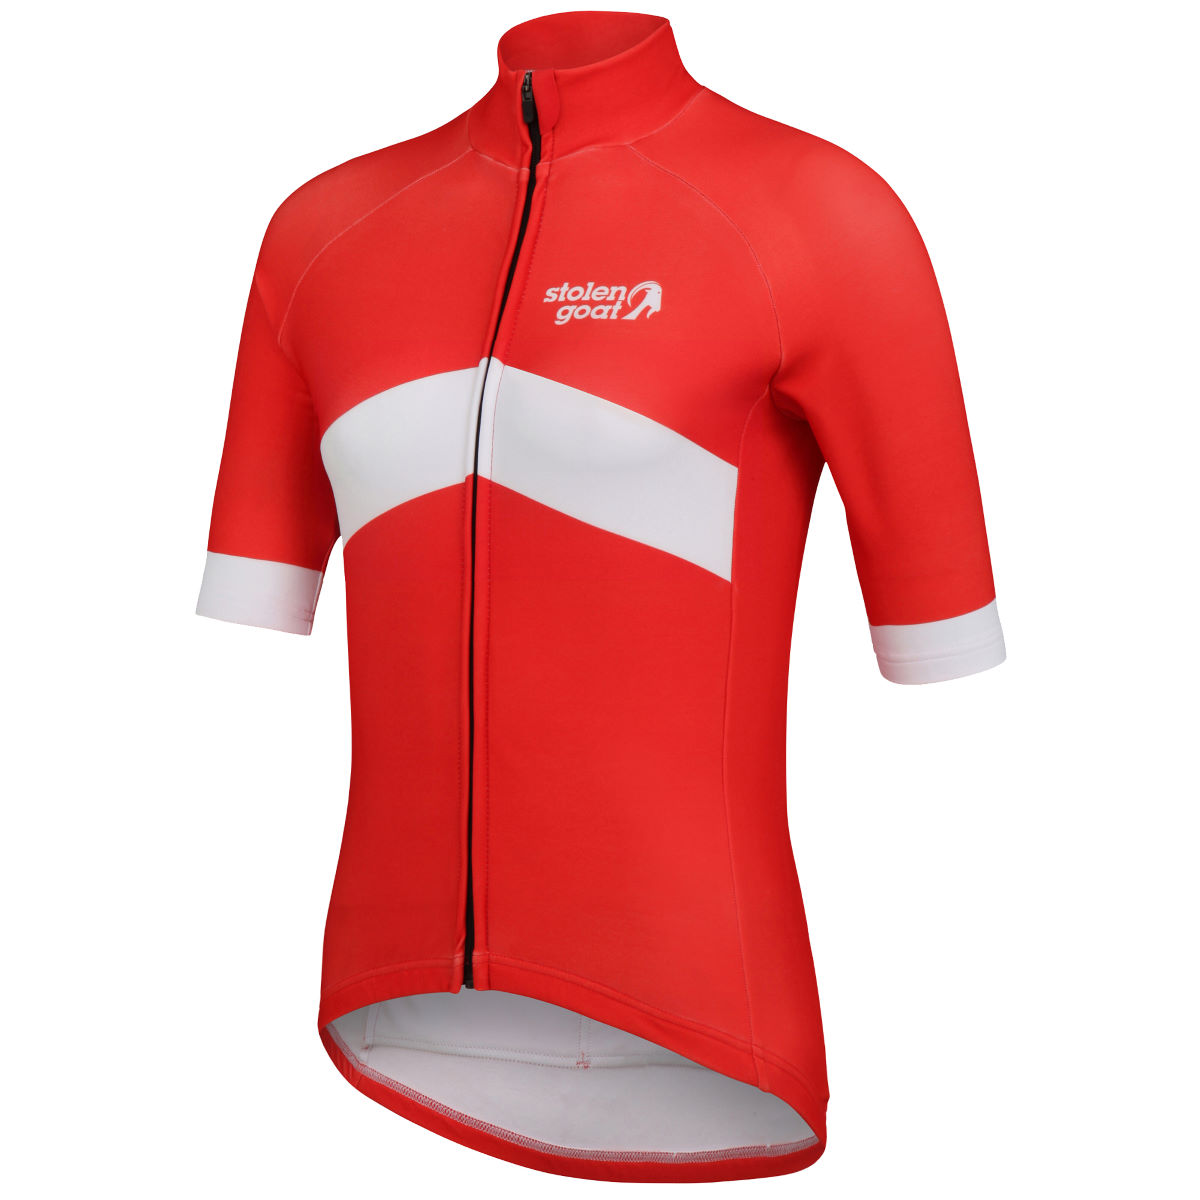 Maillot Femme Stolen Goat Orkaan Everyday (manches courtes) - L